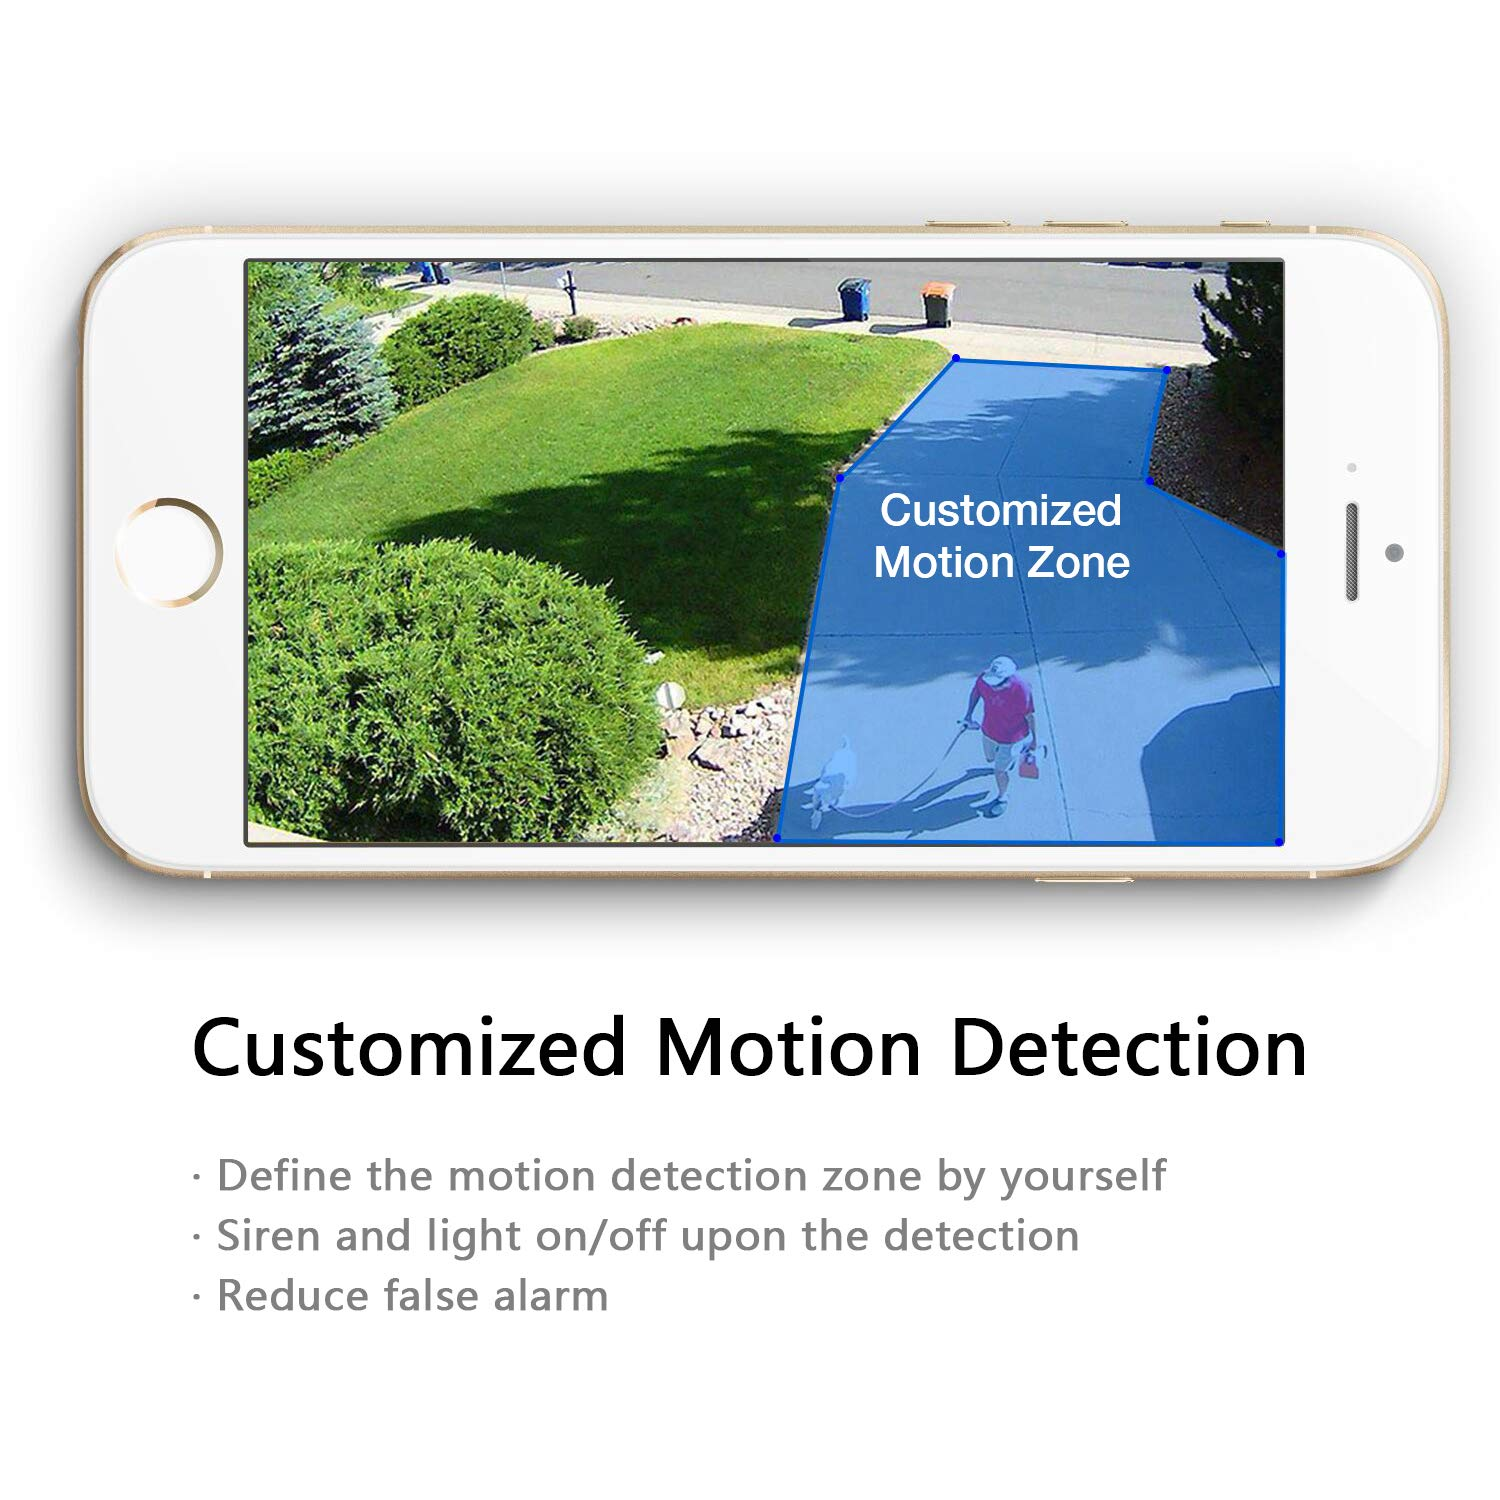 SENS8 Outdoor Camera with Light, 1080p HD, Wi-Fi Home Security Camera, No Subscription, Customized Motion Zone, Motion Detection, Night Vision, Two-Way Audio and Siren Alarm by SENS8 (Image #3)